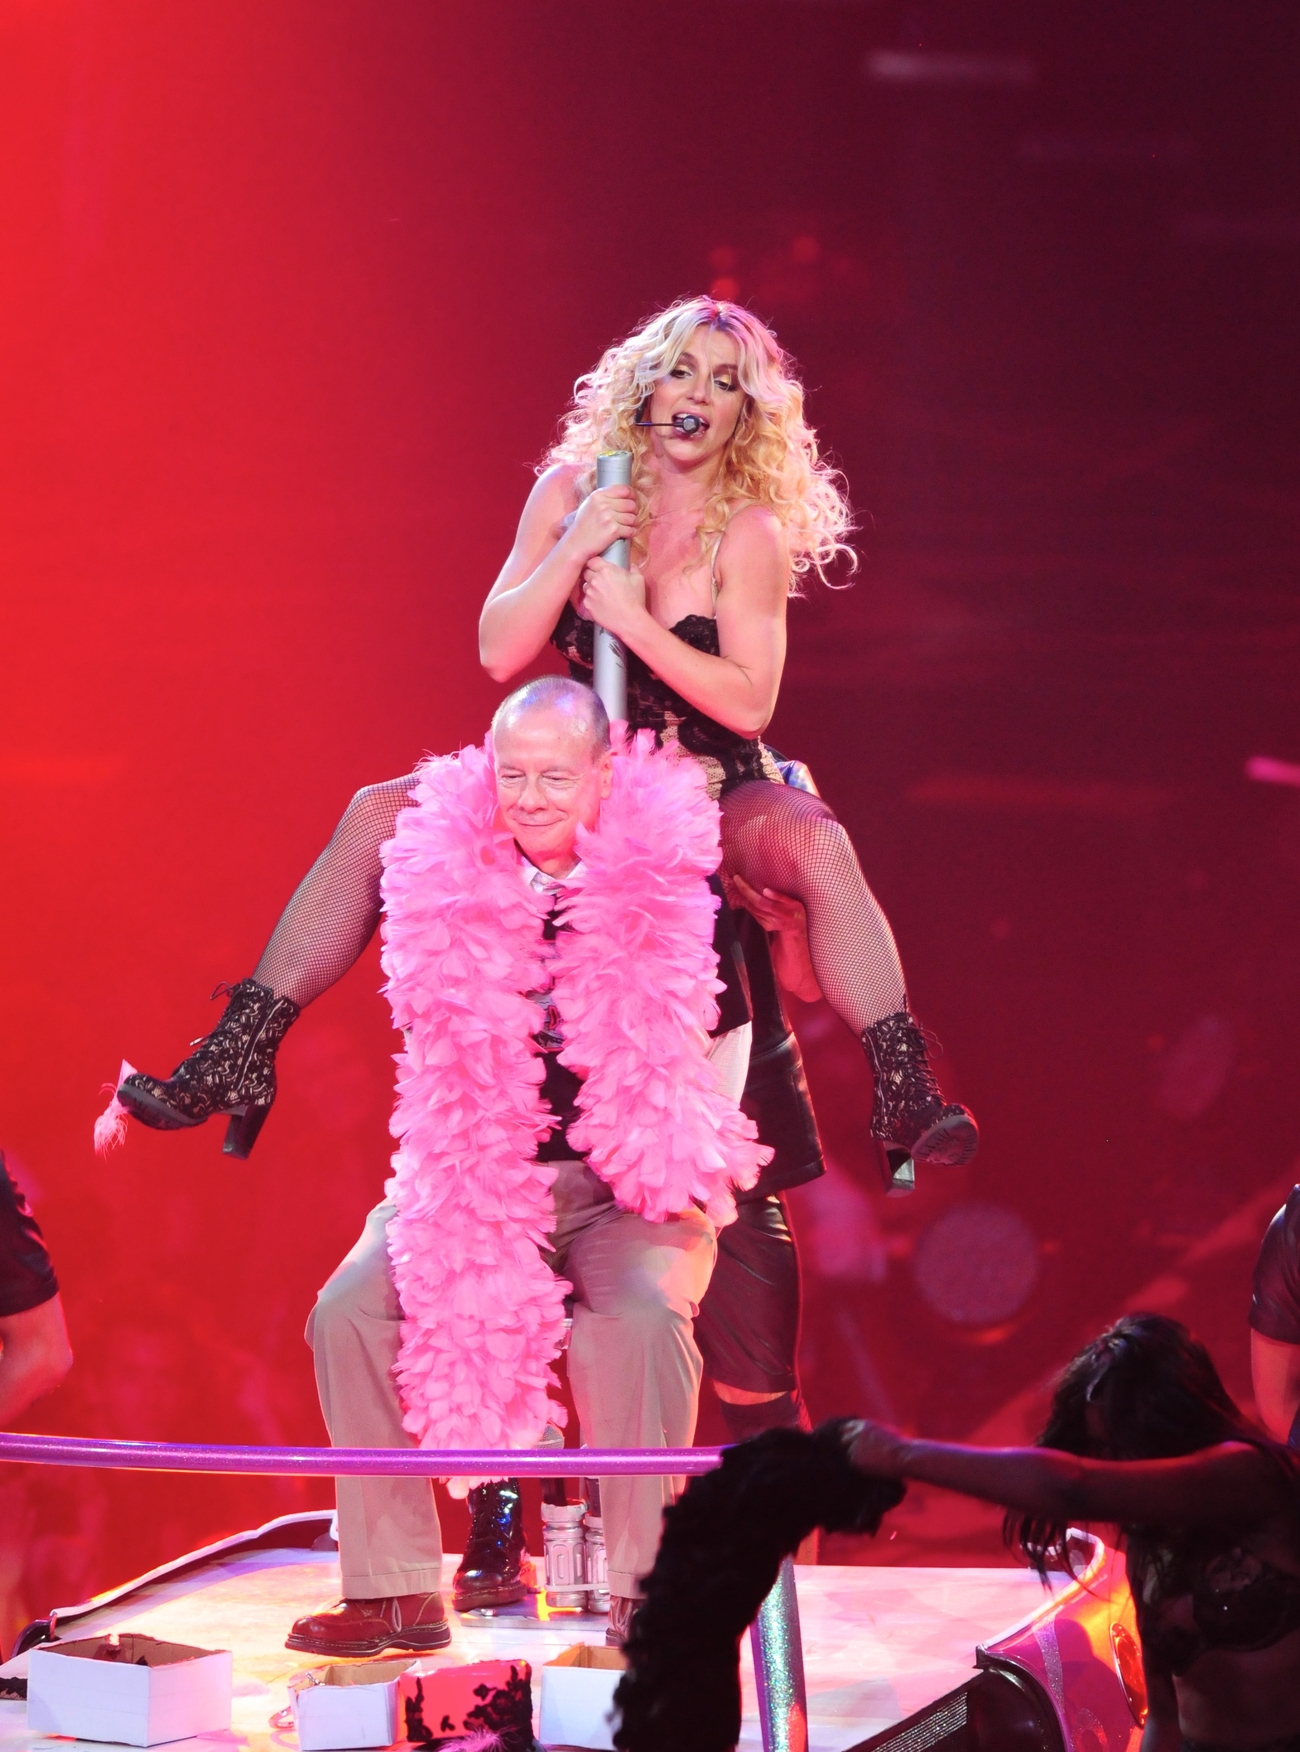 Honda Of Katy >> Britney Spears Perform Live at Honda Center in Anaheim - June 24-15 - GotCeleb